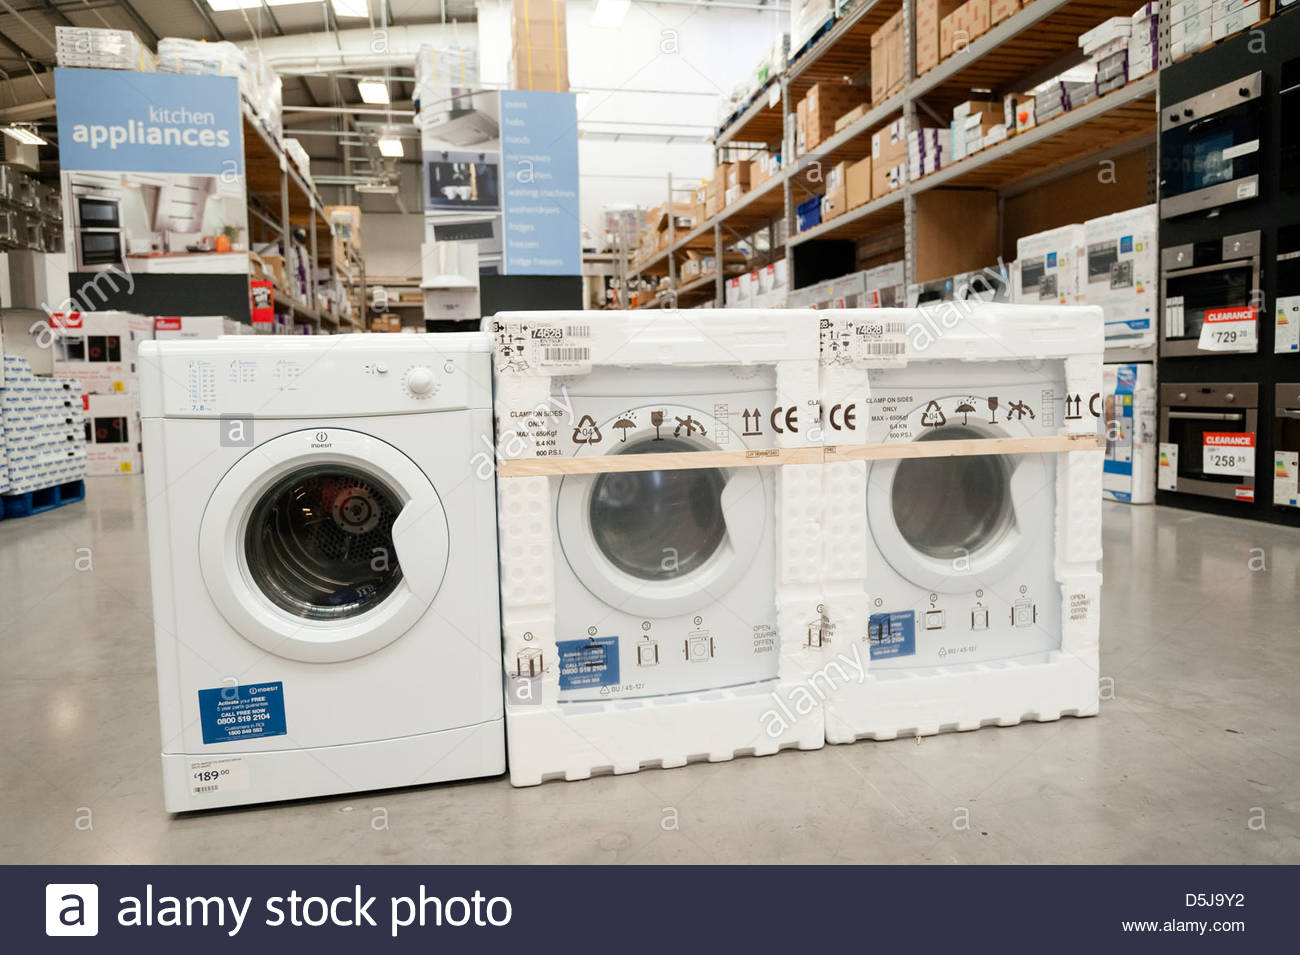 Kitchen appliances for sale inside a B&Q store. New washing machines for sale. - Stock Image